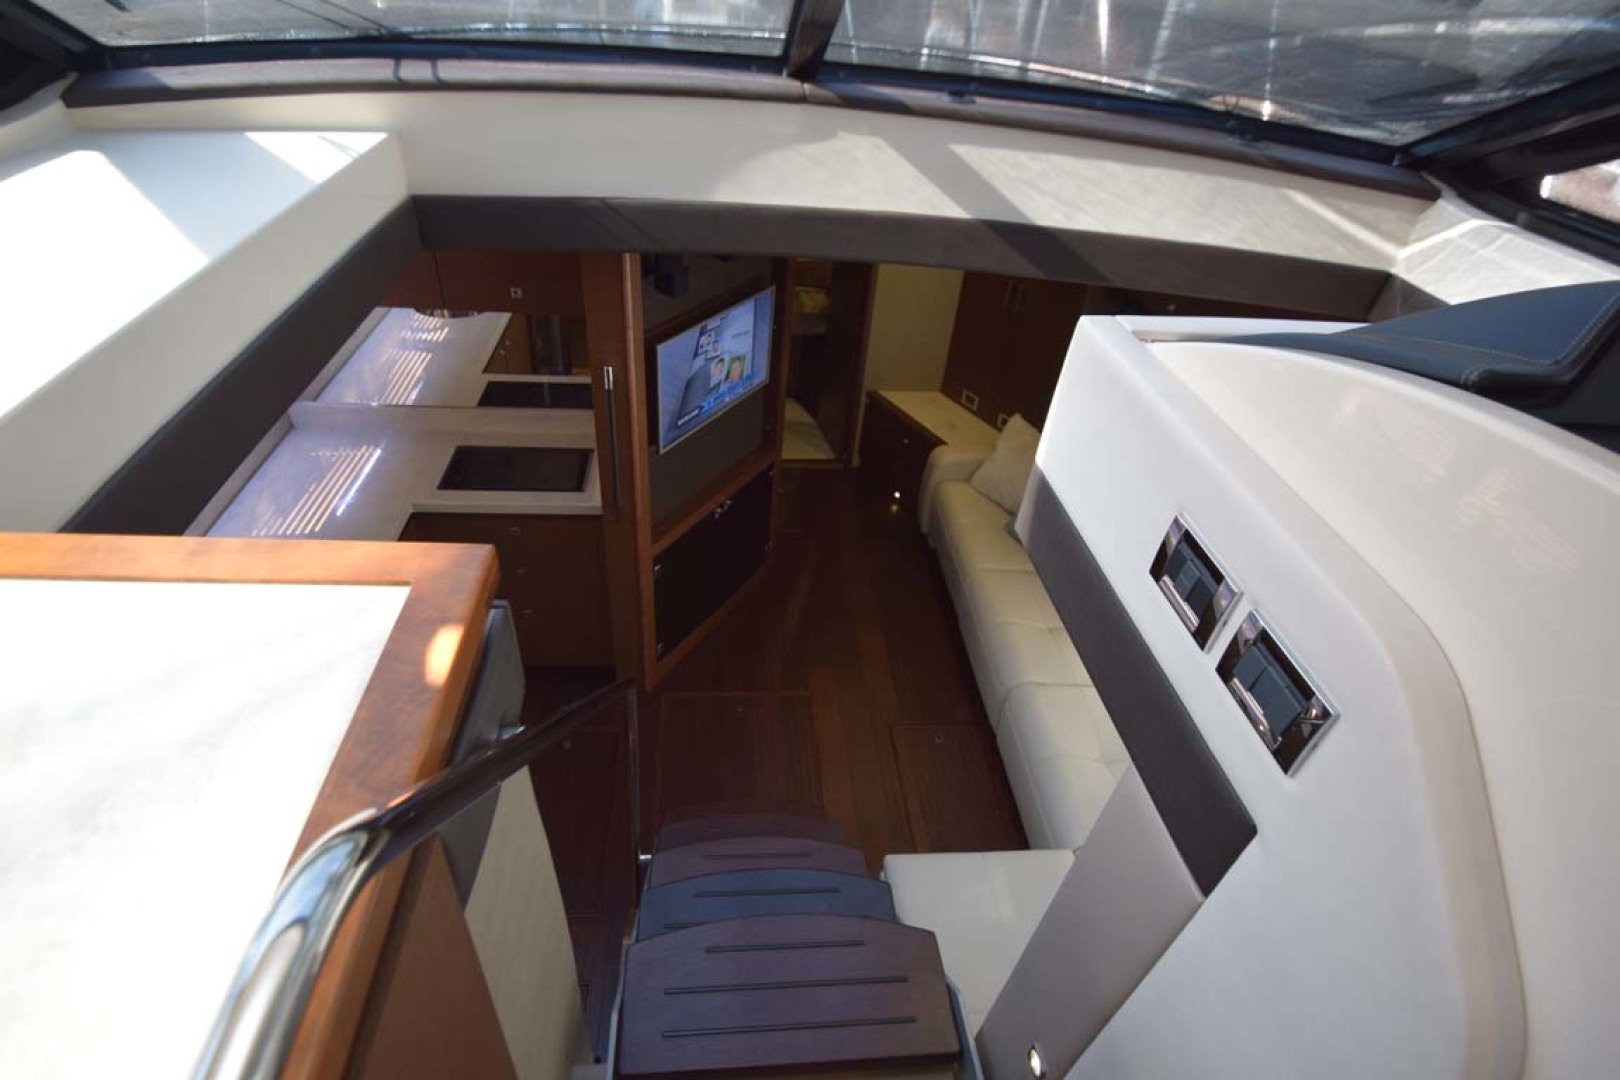 Sea Ray-510 Sundancer 2015 -Ft Lauderdale-Florida-United States-View To Below Deck From Stairs In Salon-1189927 | Thumbnail